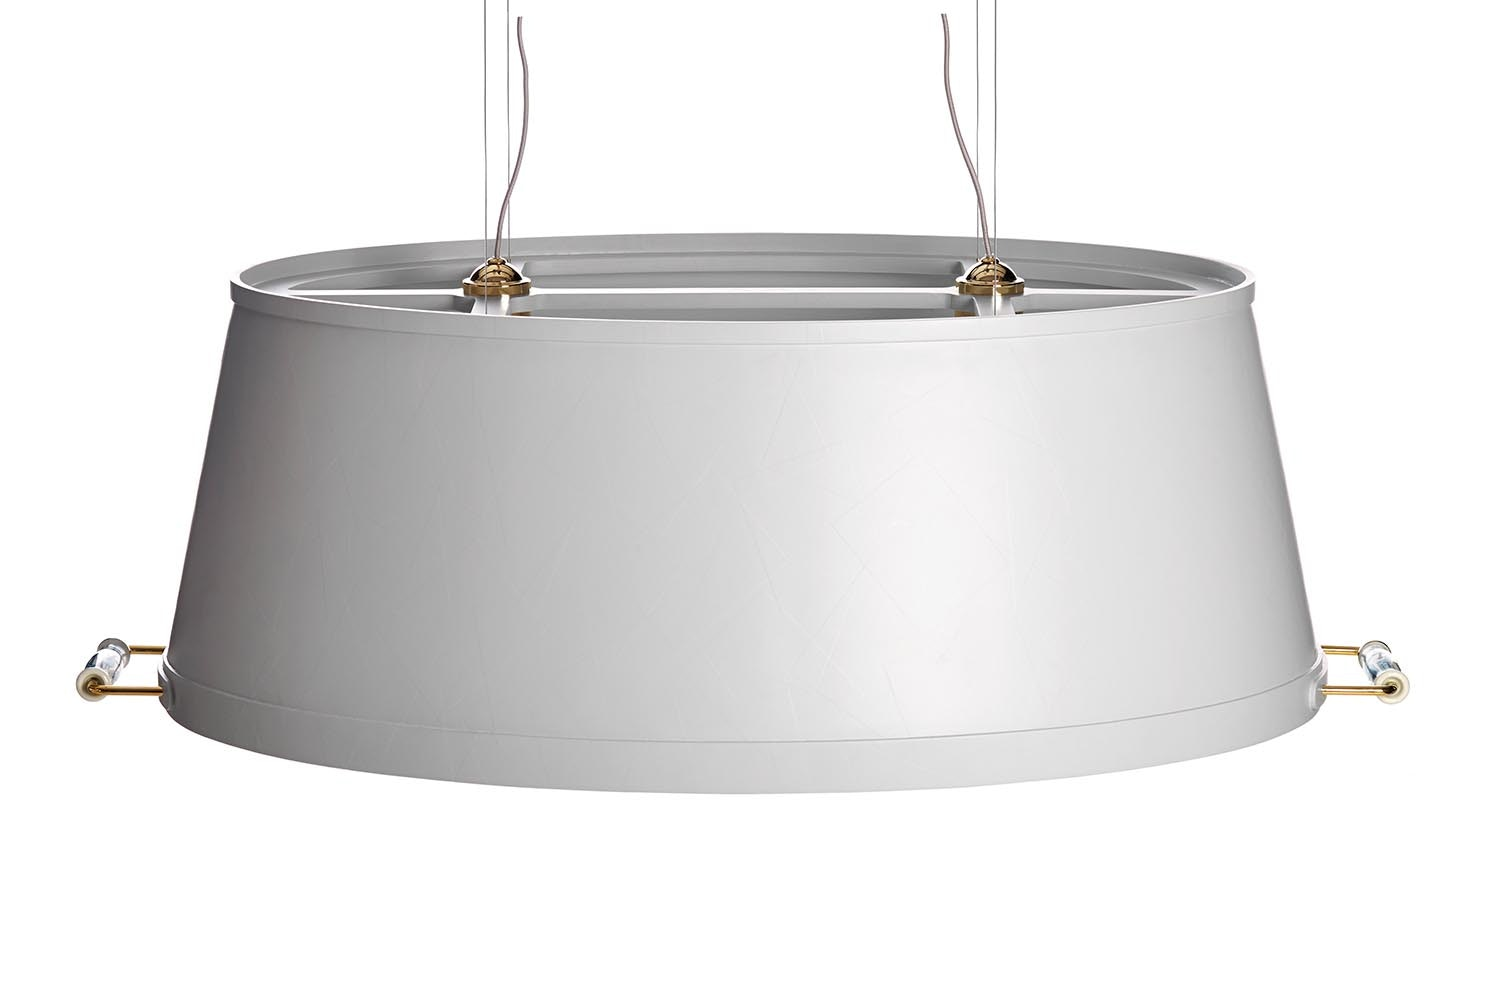 Tub Lamp Suspension Lamp by Studio Job for Moooi